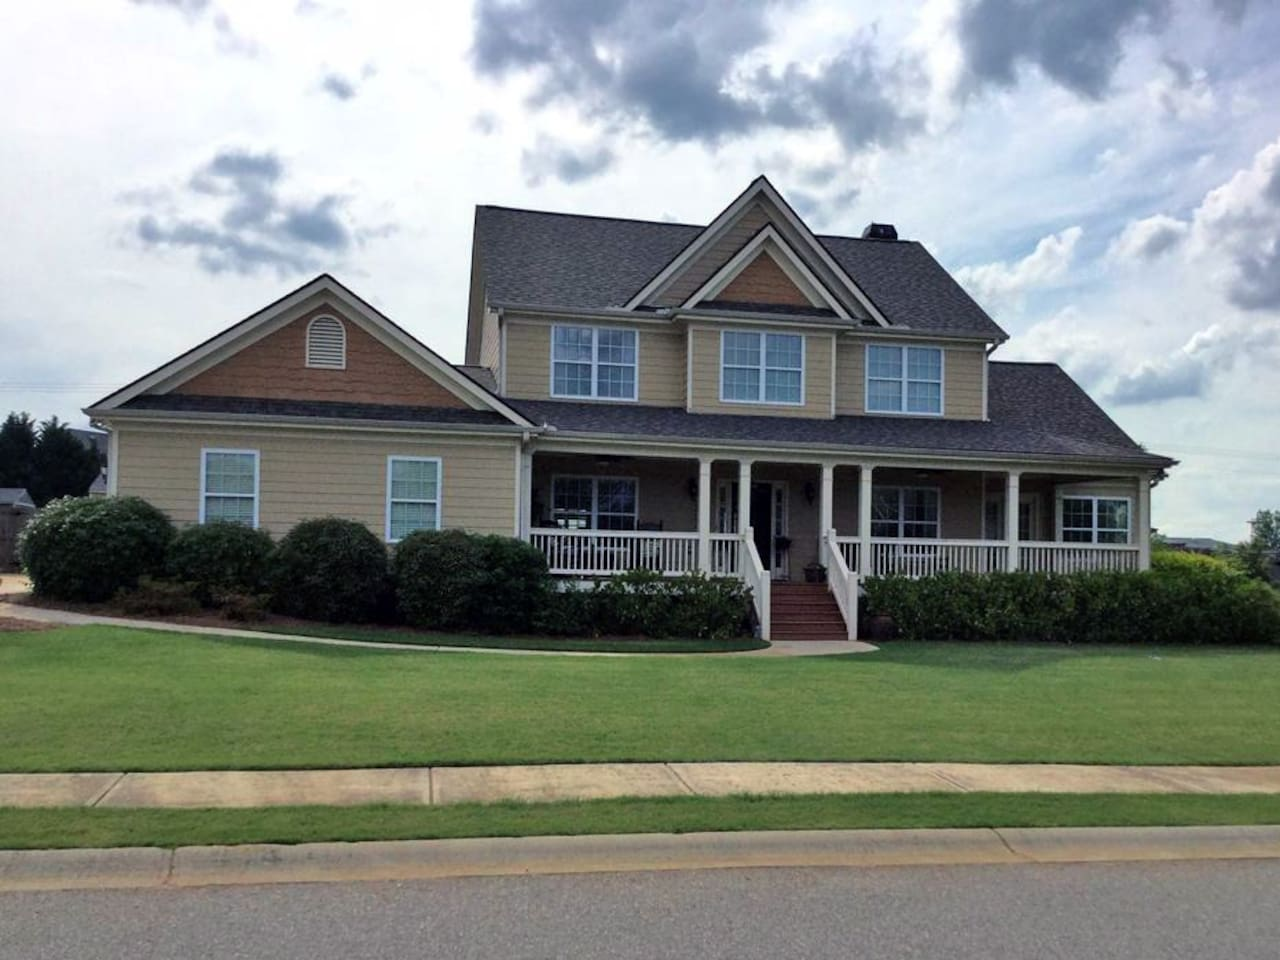 All the comforts of home and benefits of vacation await you in a friendly neighborhood setting with wrap-around front porch and landscaped backyard with pool. Rent a room or two, have the house to yourself or let us host you!